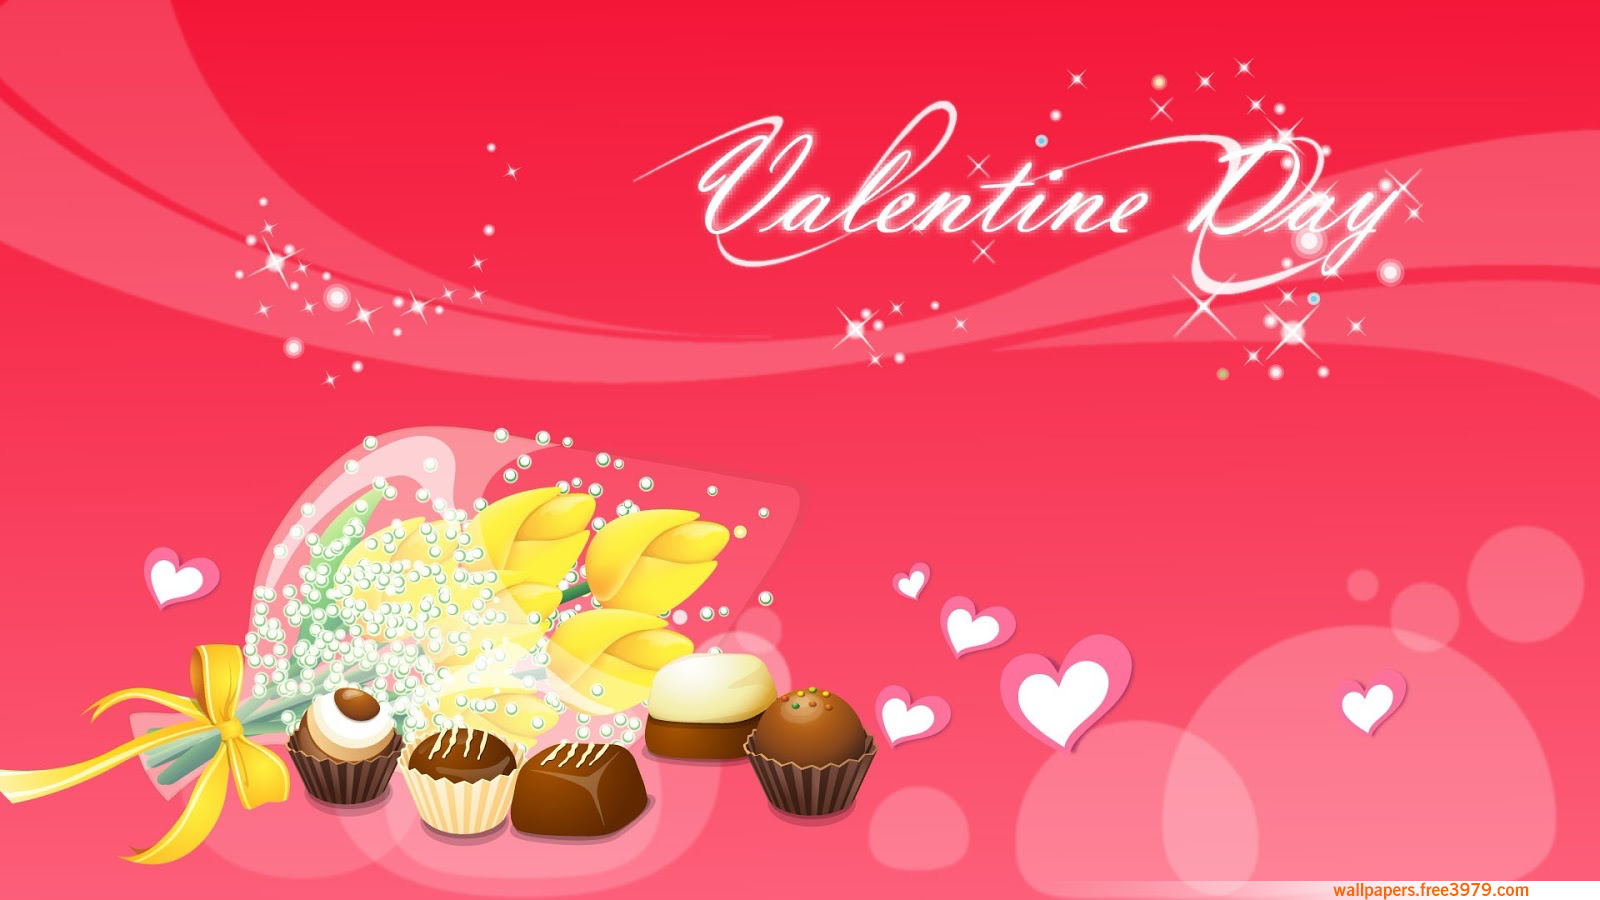 Wallpapers Valentine's Day